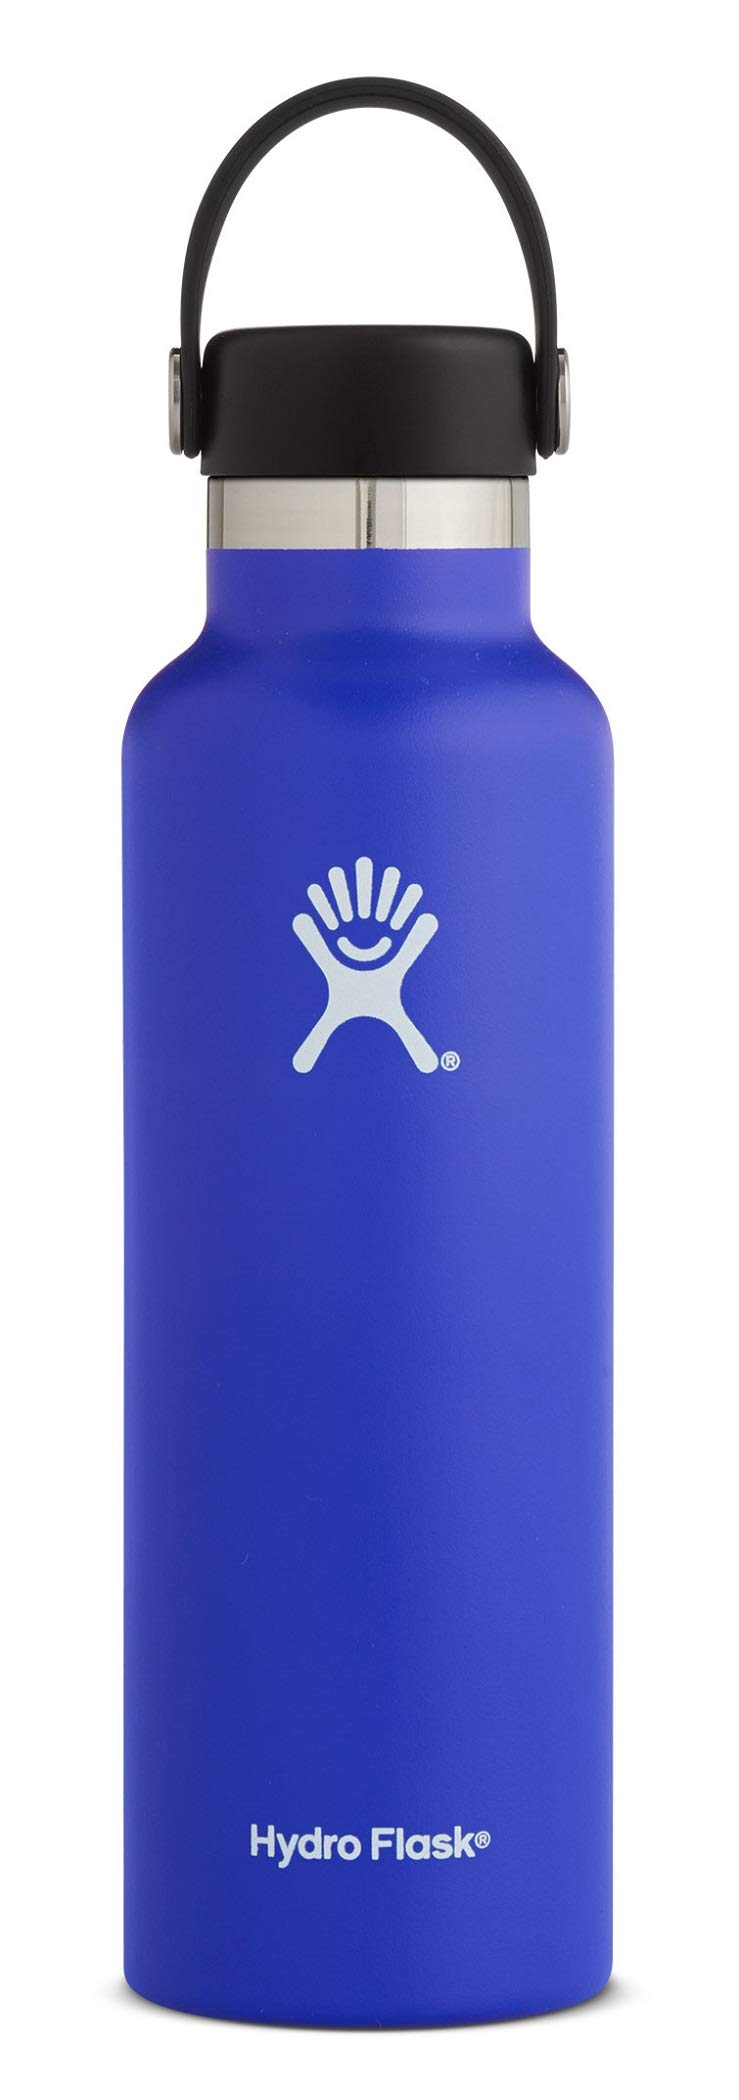 Hydro Flask 21 oz Water Bottle - Stainless Steel & Vacuum Insulated - Standard Mouth with Leak Proof Flex Cap - Blueberry by Hydro Flask